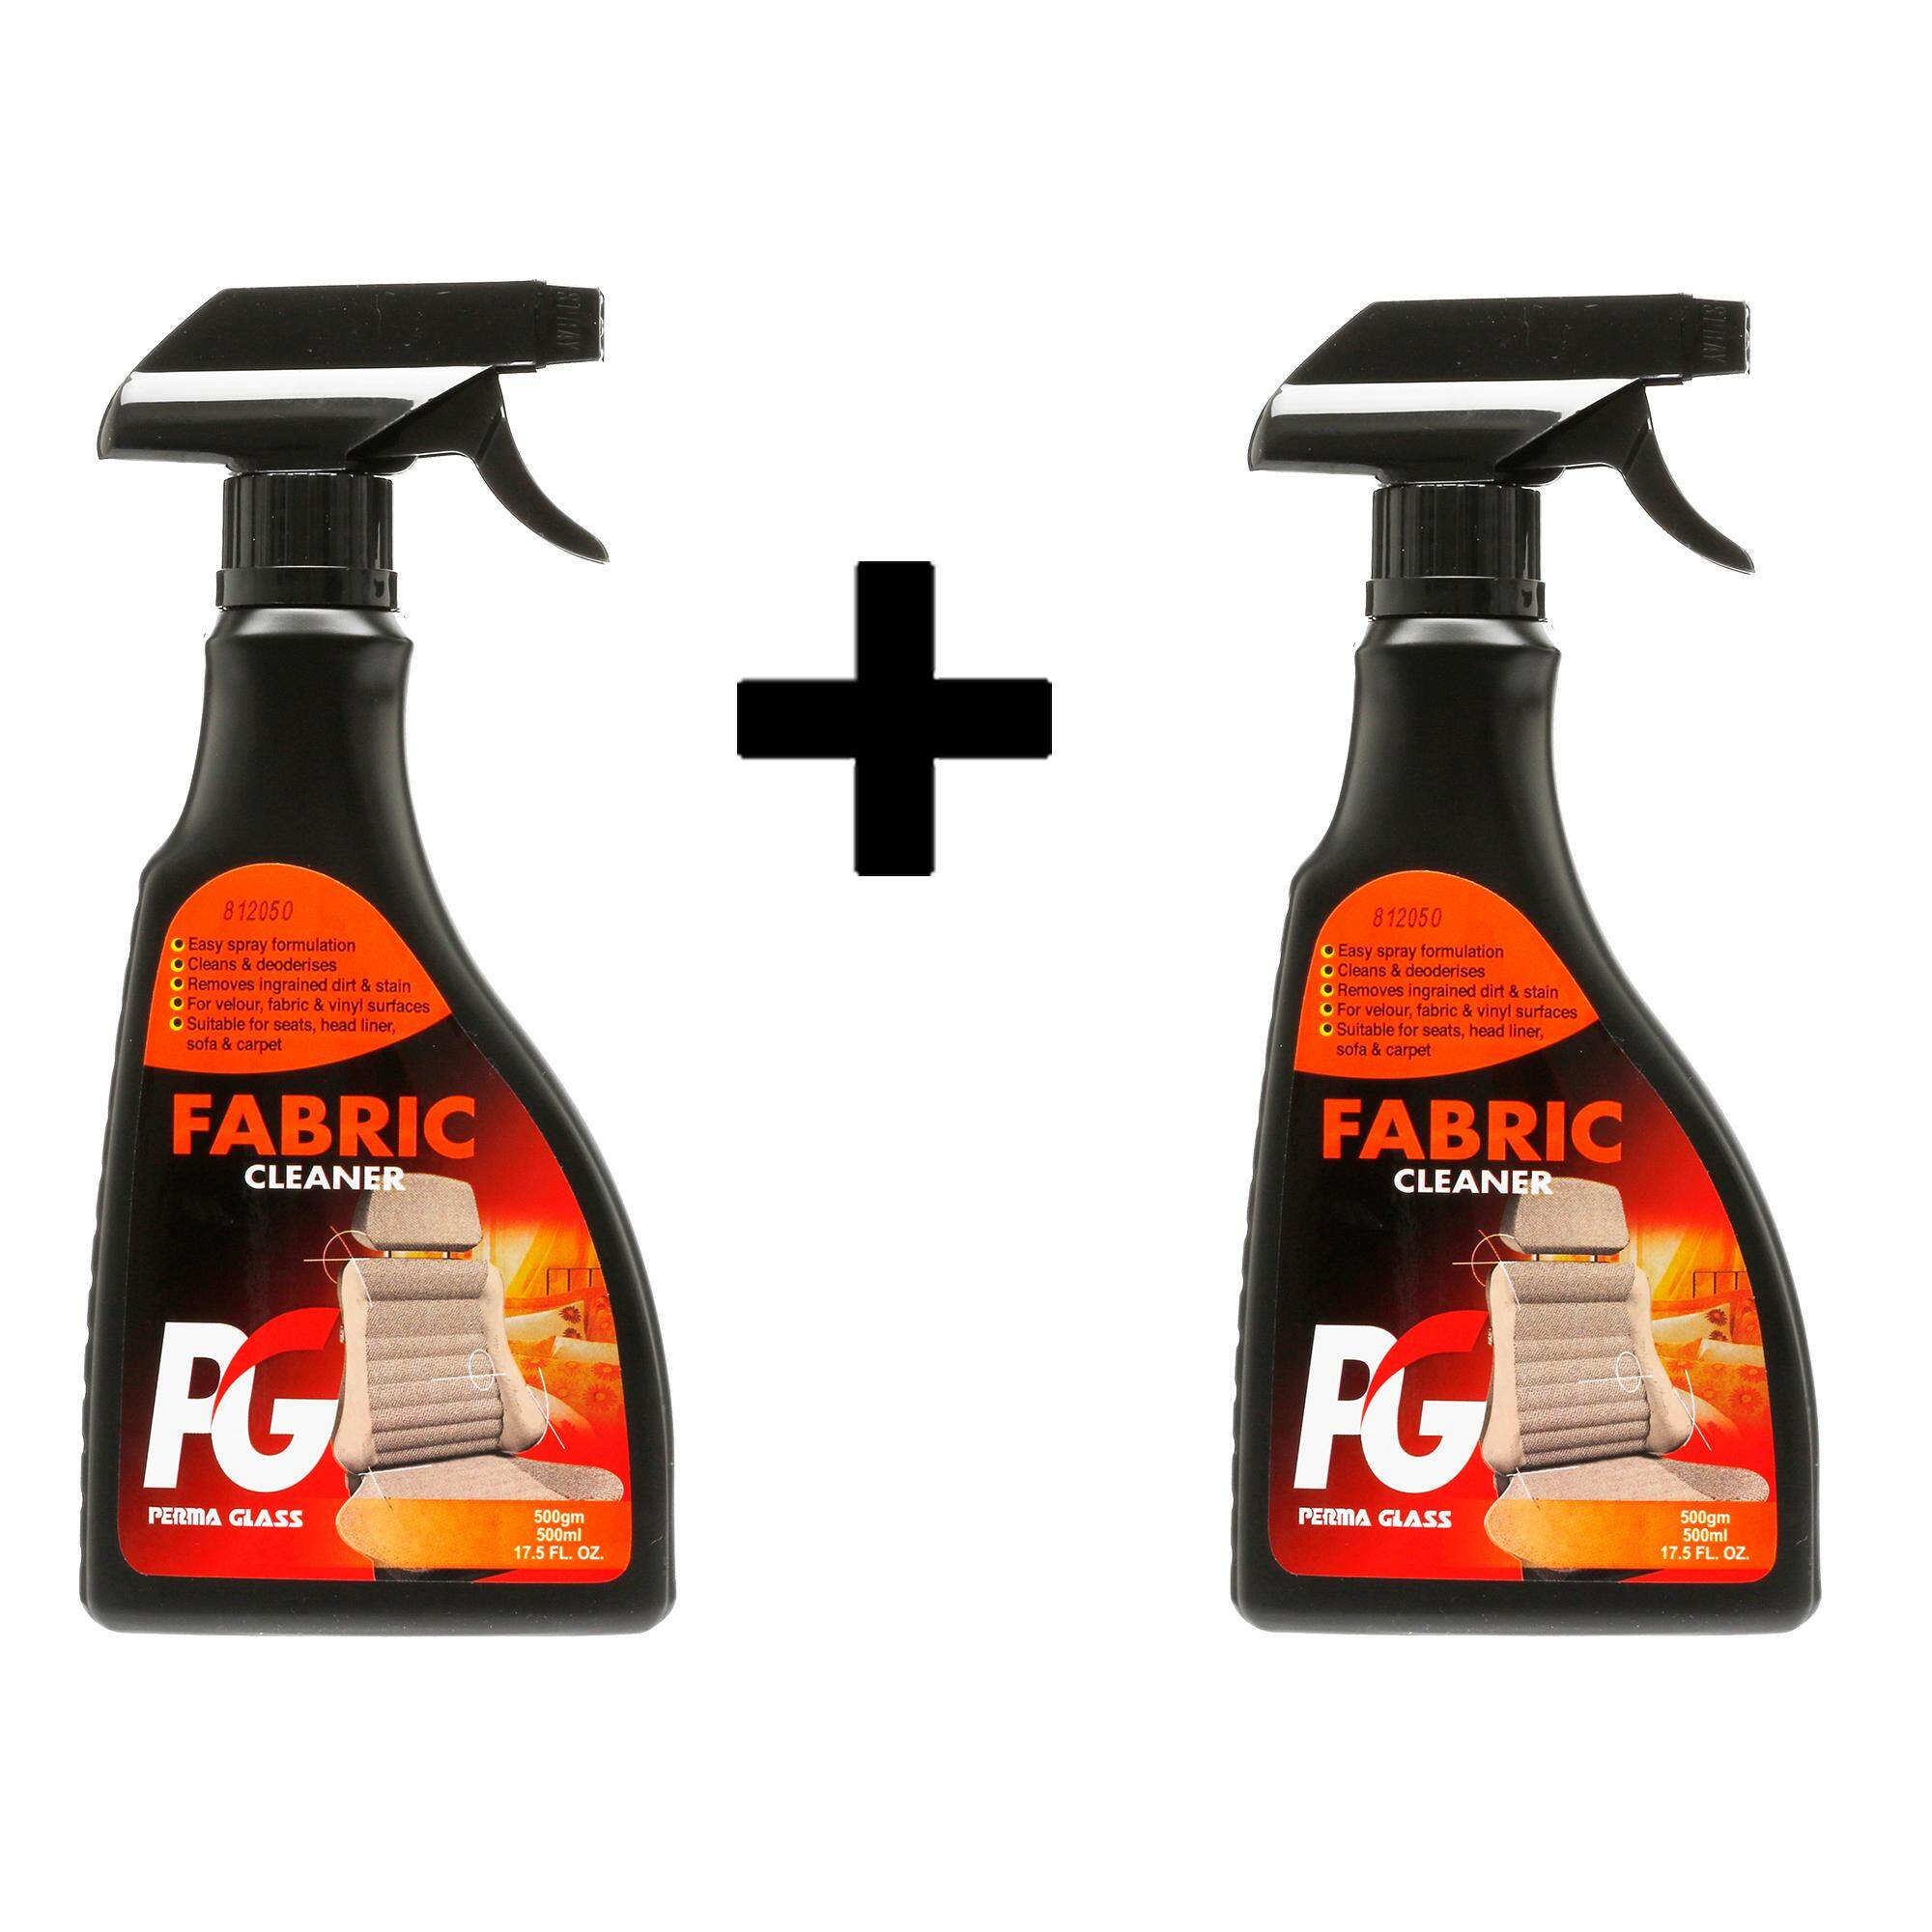 PG FABRIC CLEANER X 2 SETS (500ML) - CAR CARE INTERIOR